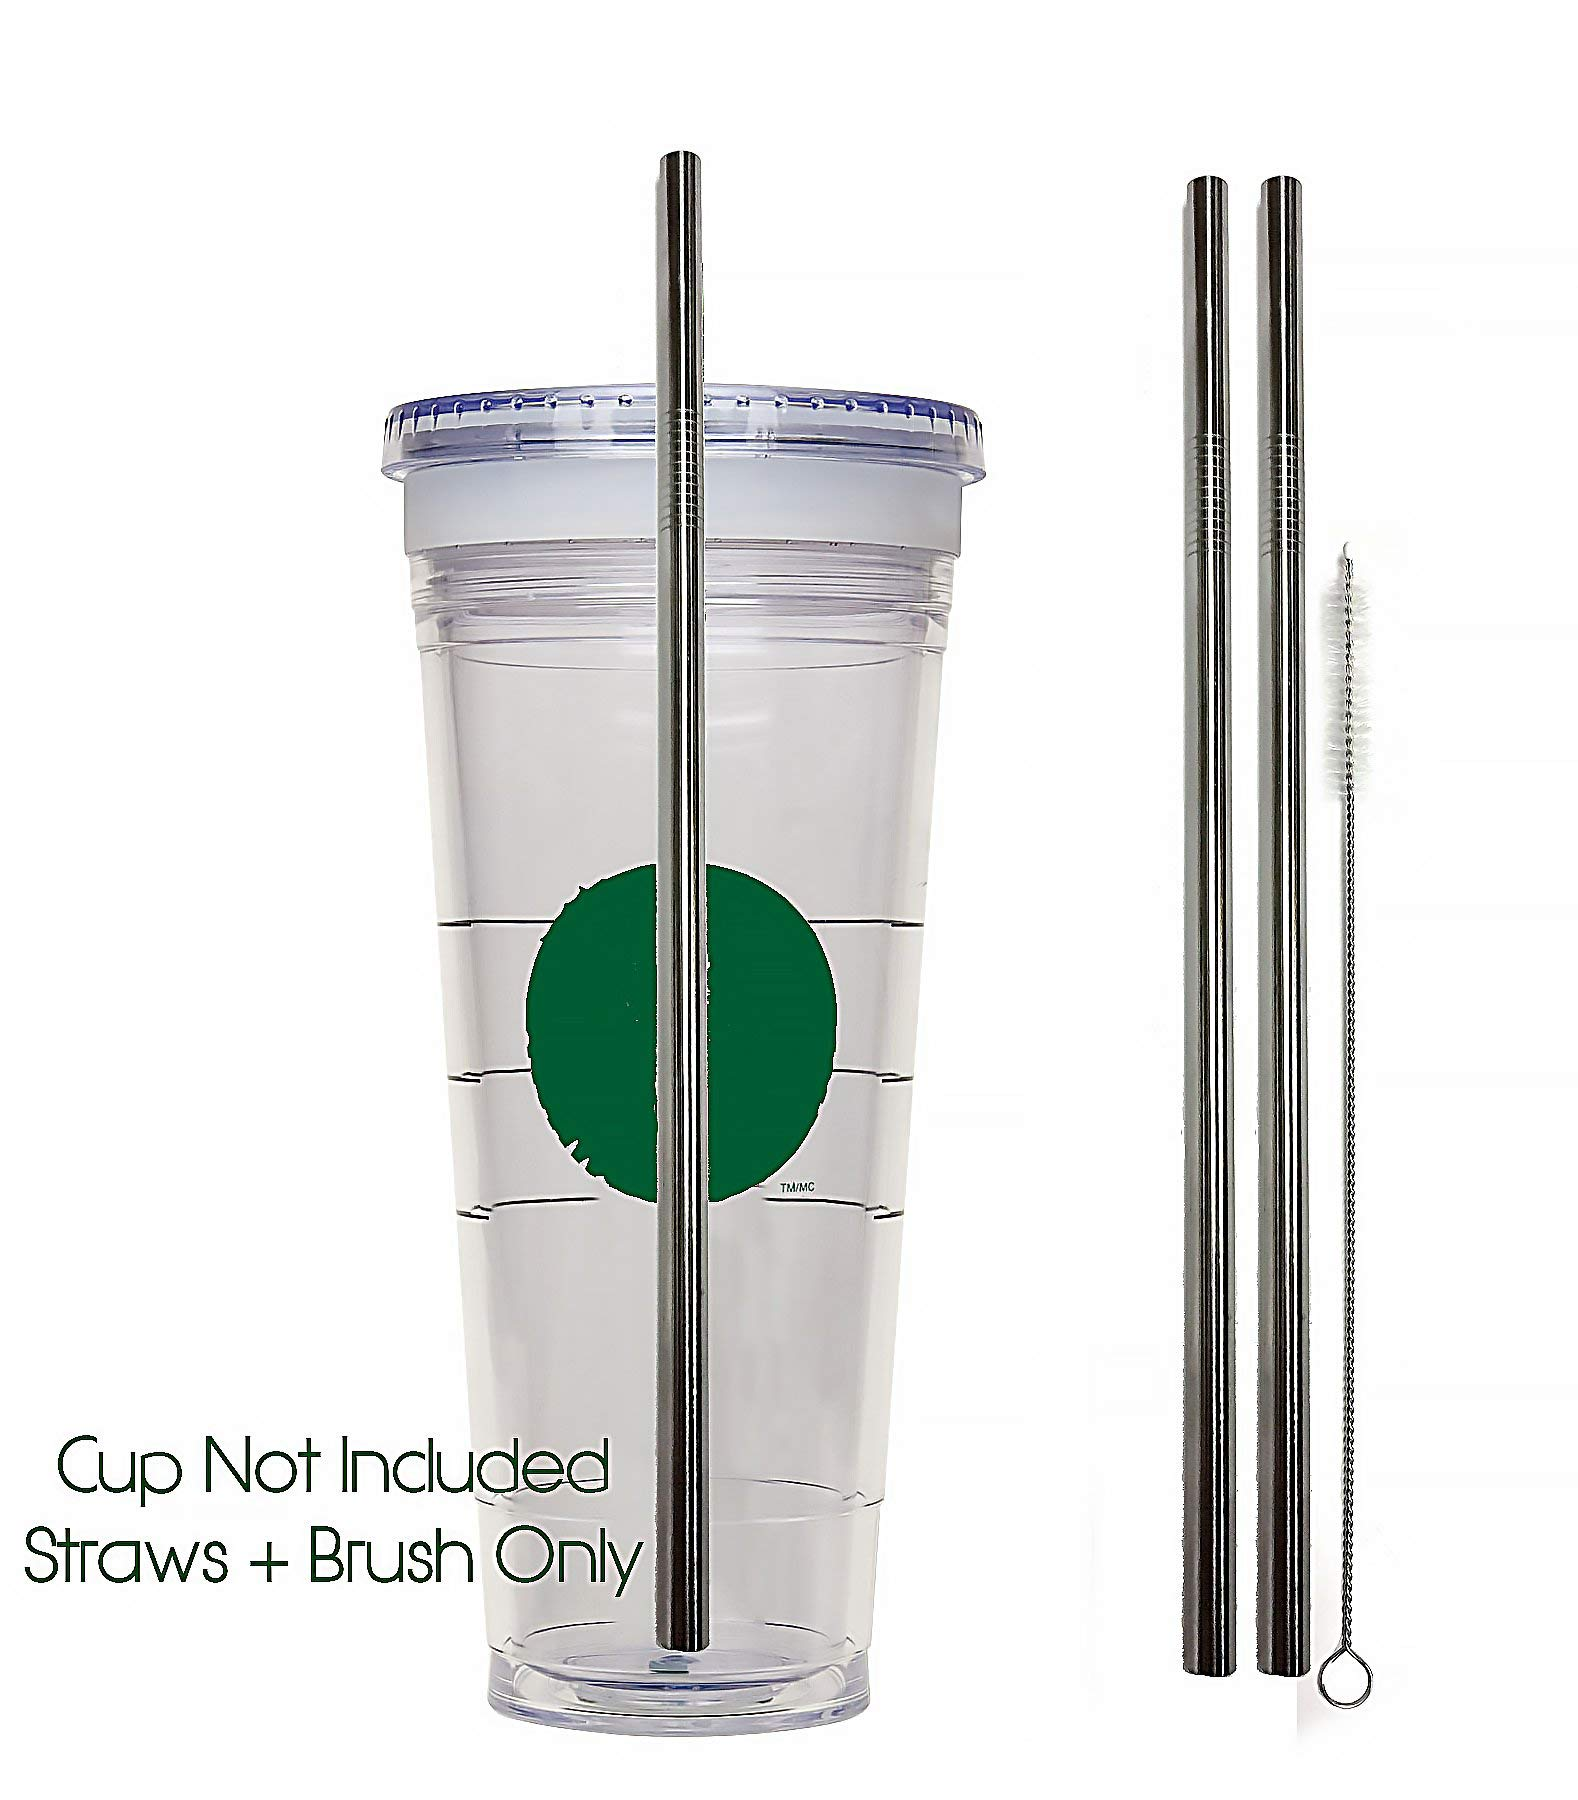 4 Pack Cocostraw for Aladdin Mason Jar 32 oz Tumbler PerfectFIT 18//8 Stainless Steel Drinking Straws With Cleaning Brush